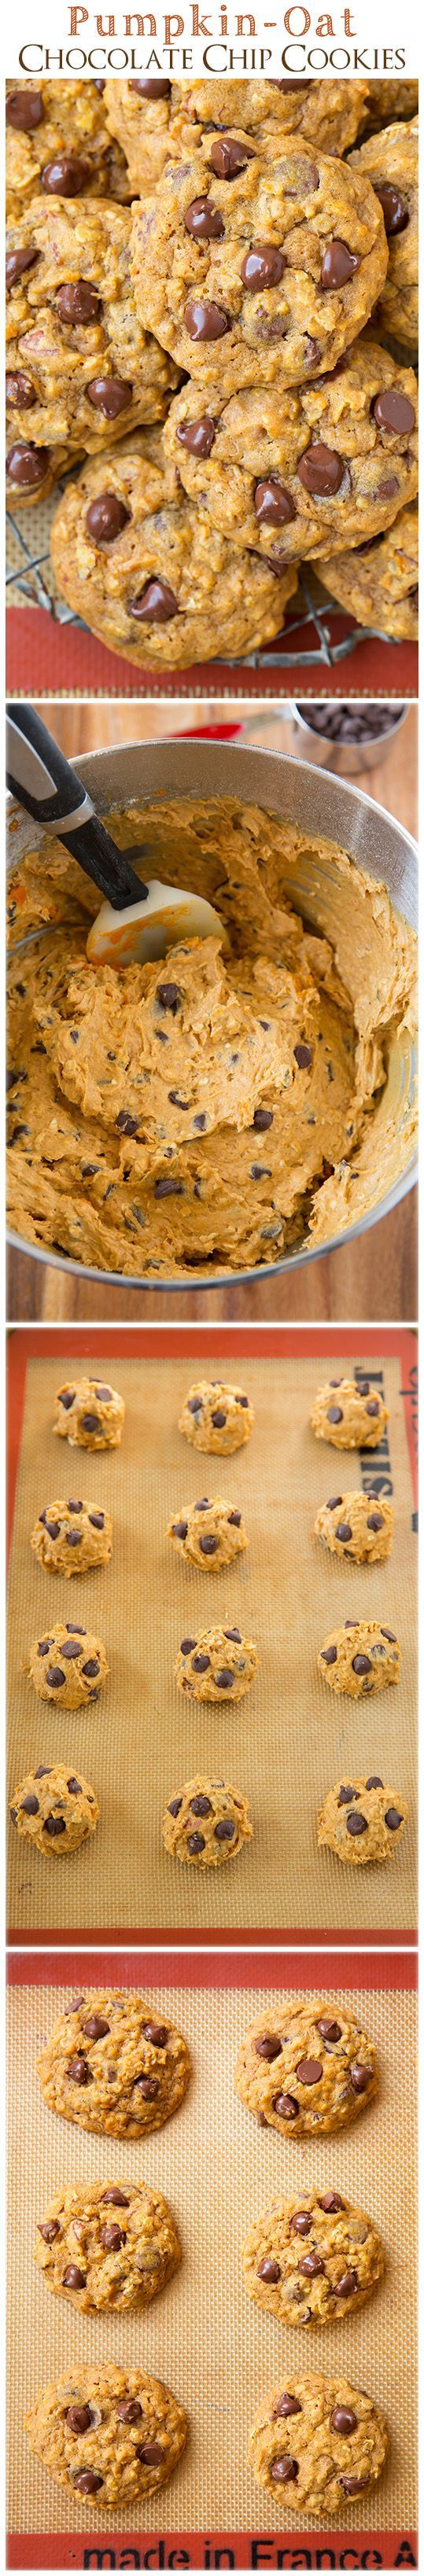 Pumpkin-Oat Chocolate Chip Cookies - these are my new favorite pumpkin cookies! They're completely irresistible!